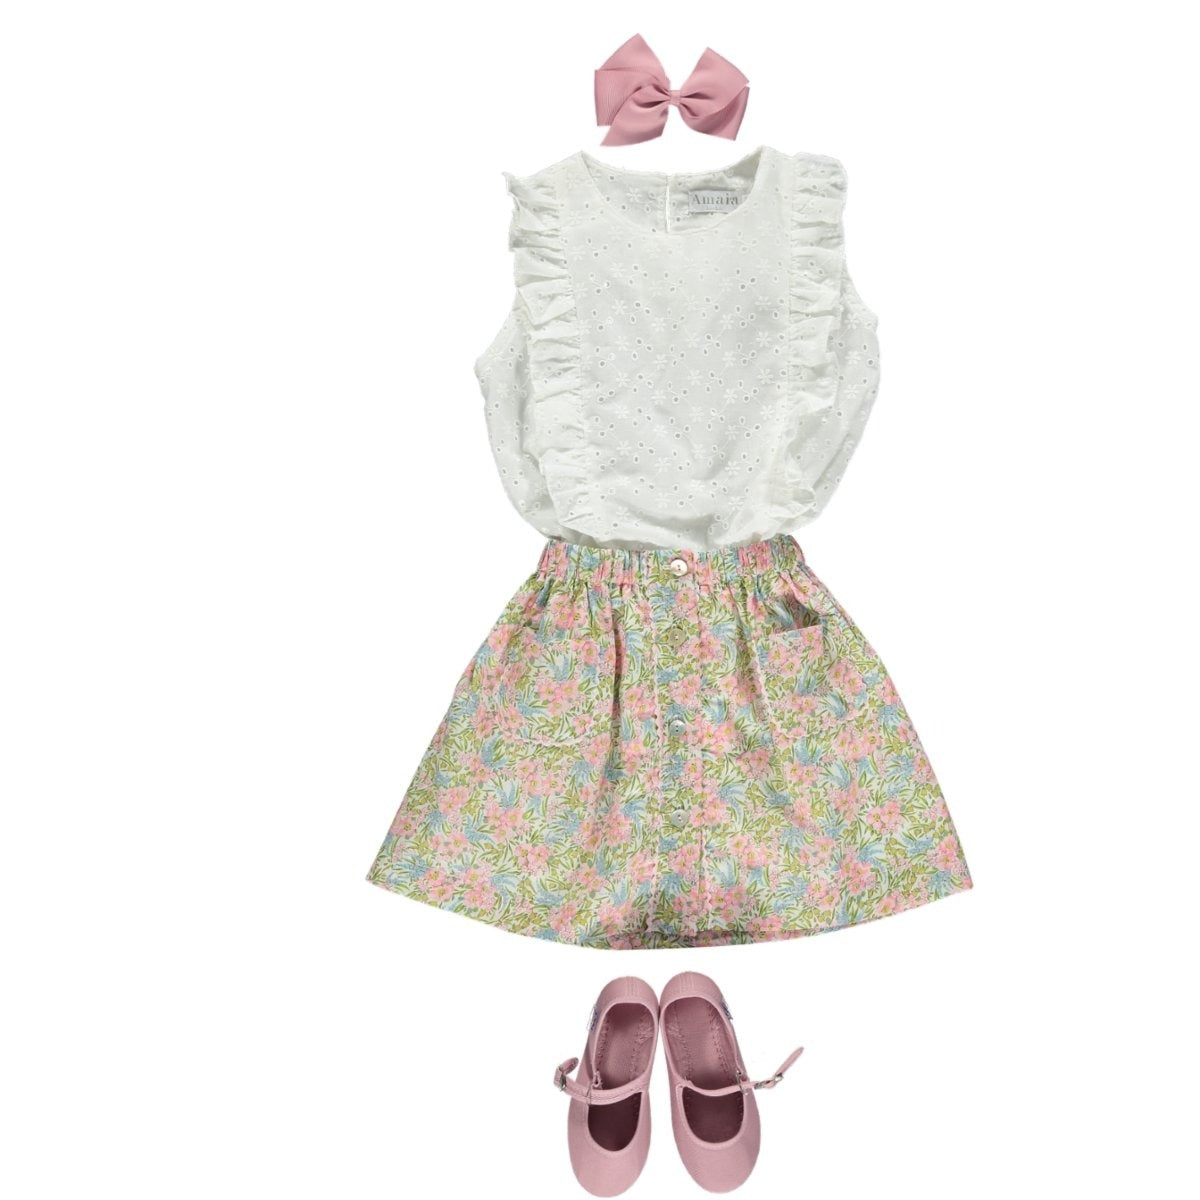 Swirling Petals Liberty girl look